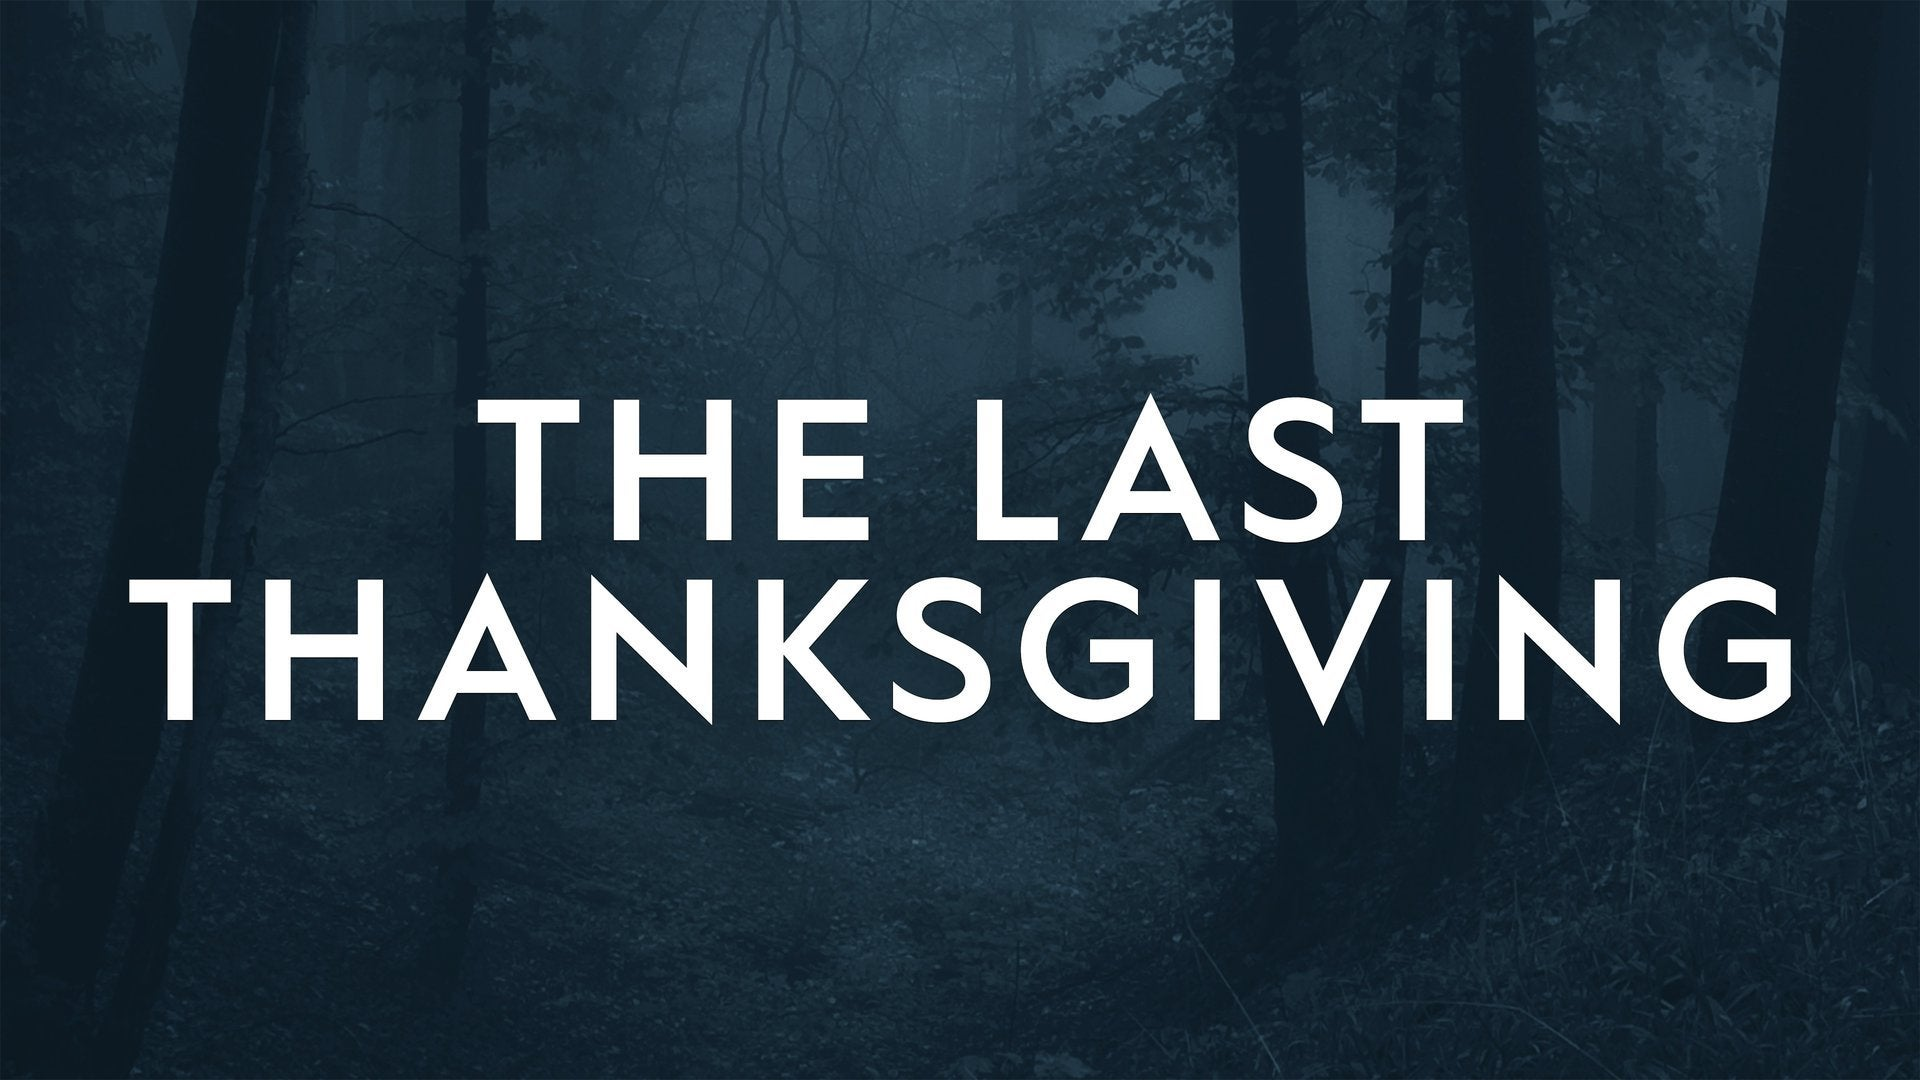 The Last Thanksgiving